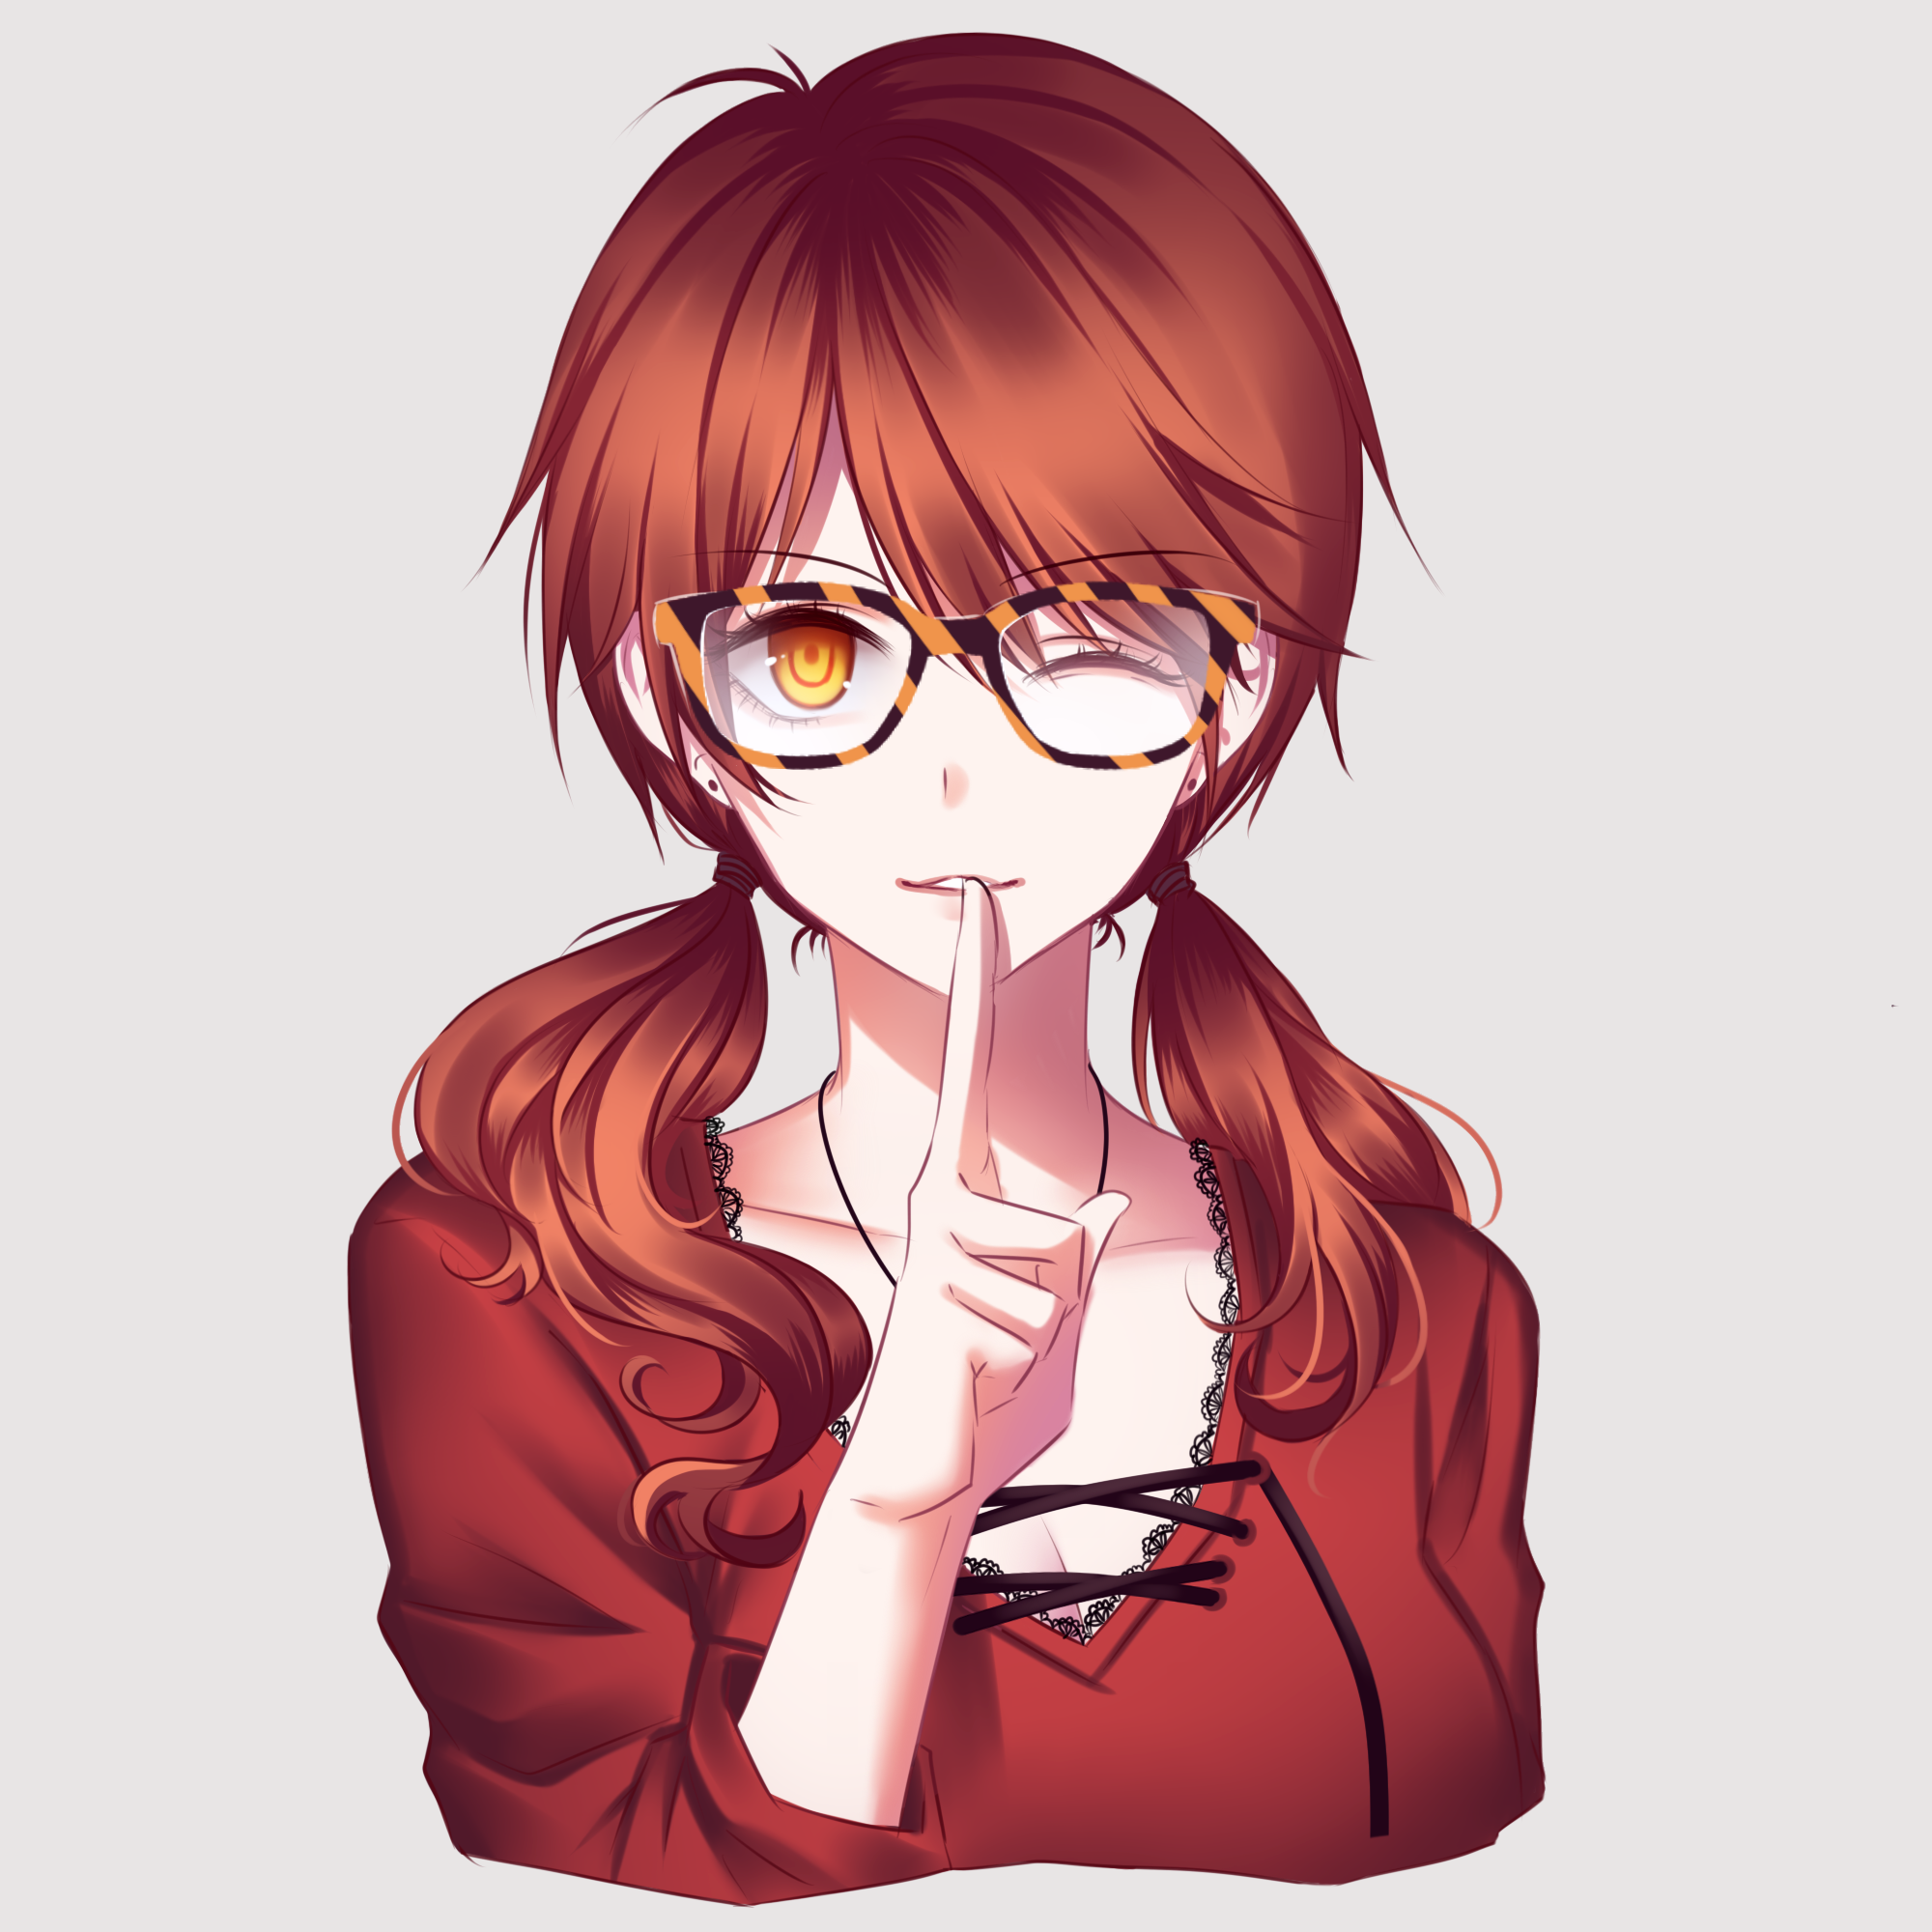 Anime glasses png. Image lucy choi with